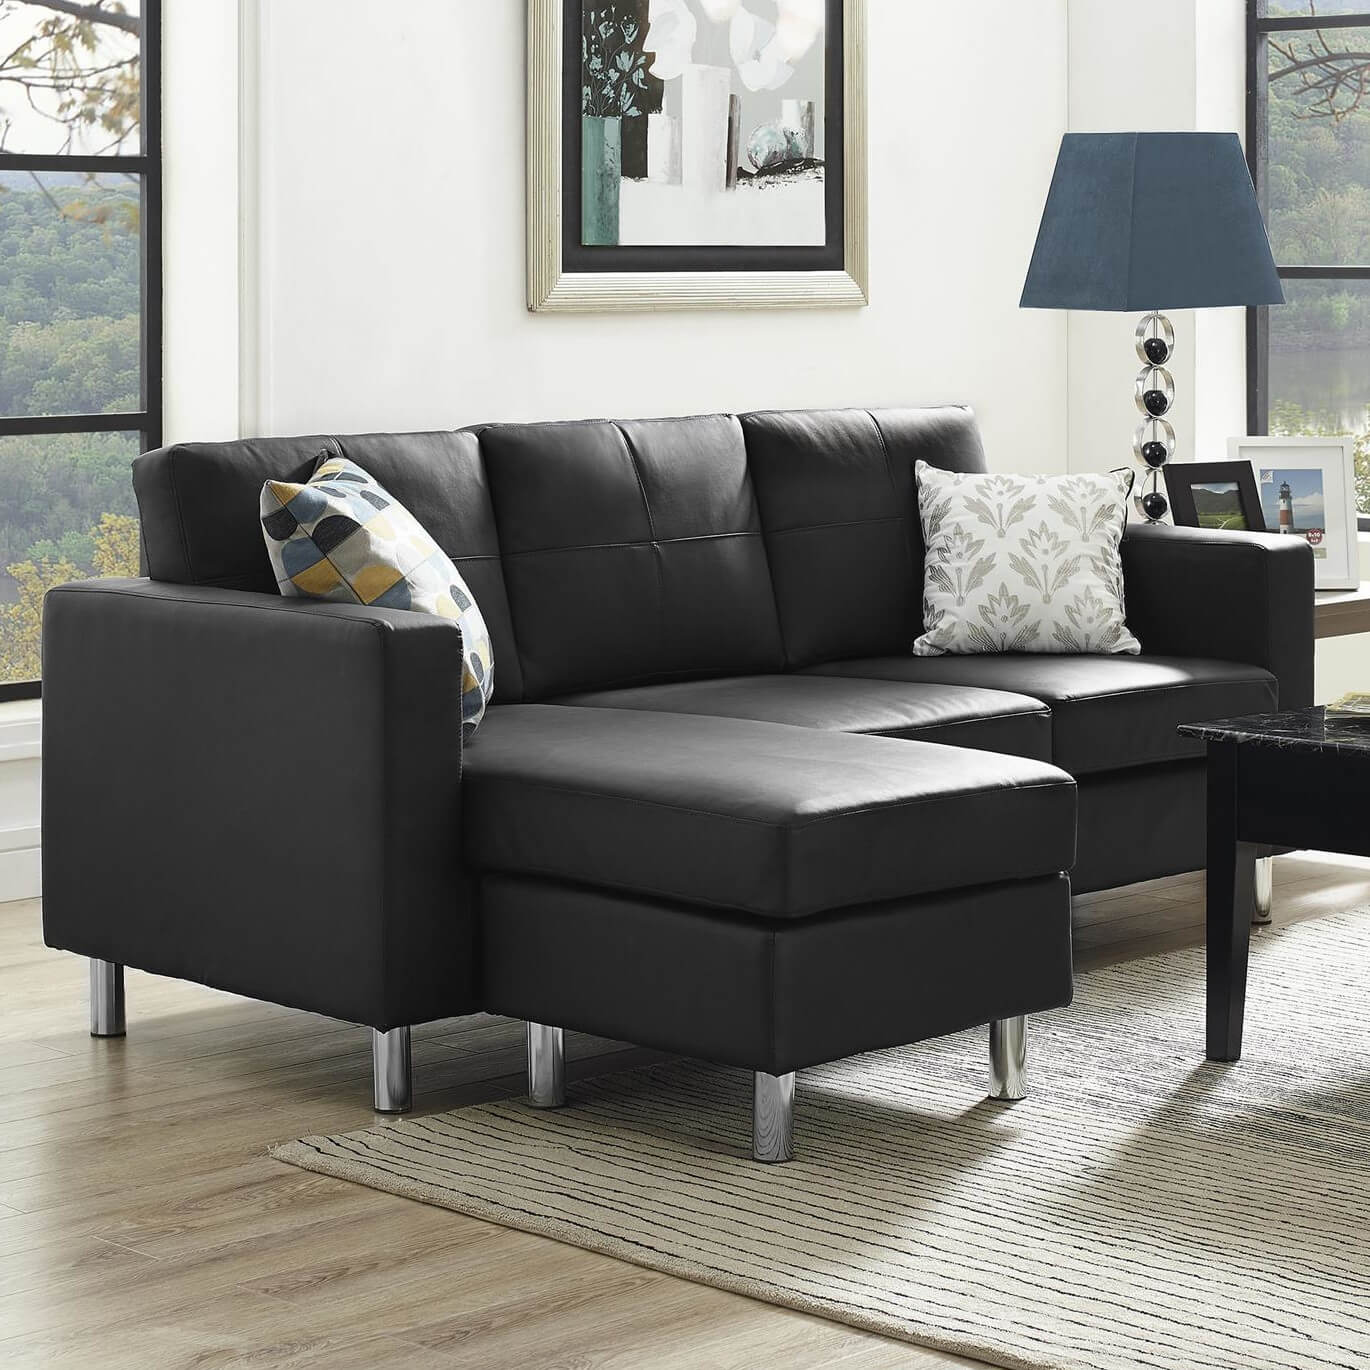 A lovely black sectional with a reversible chaise. The legs are aluminum, and the piece is upholstered in a tailored faux leather in black, but is also available in a plush microfiber.